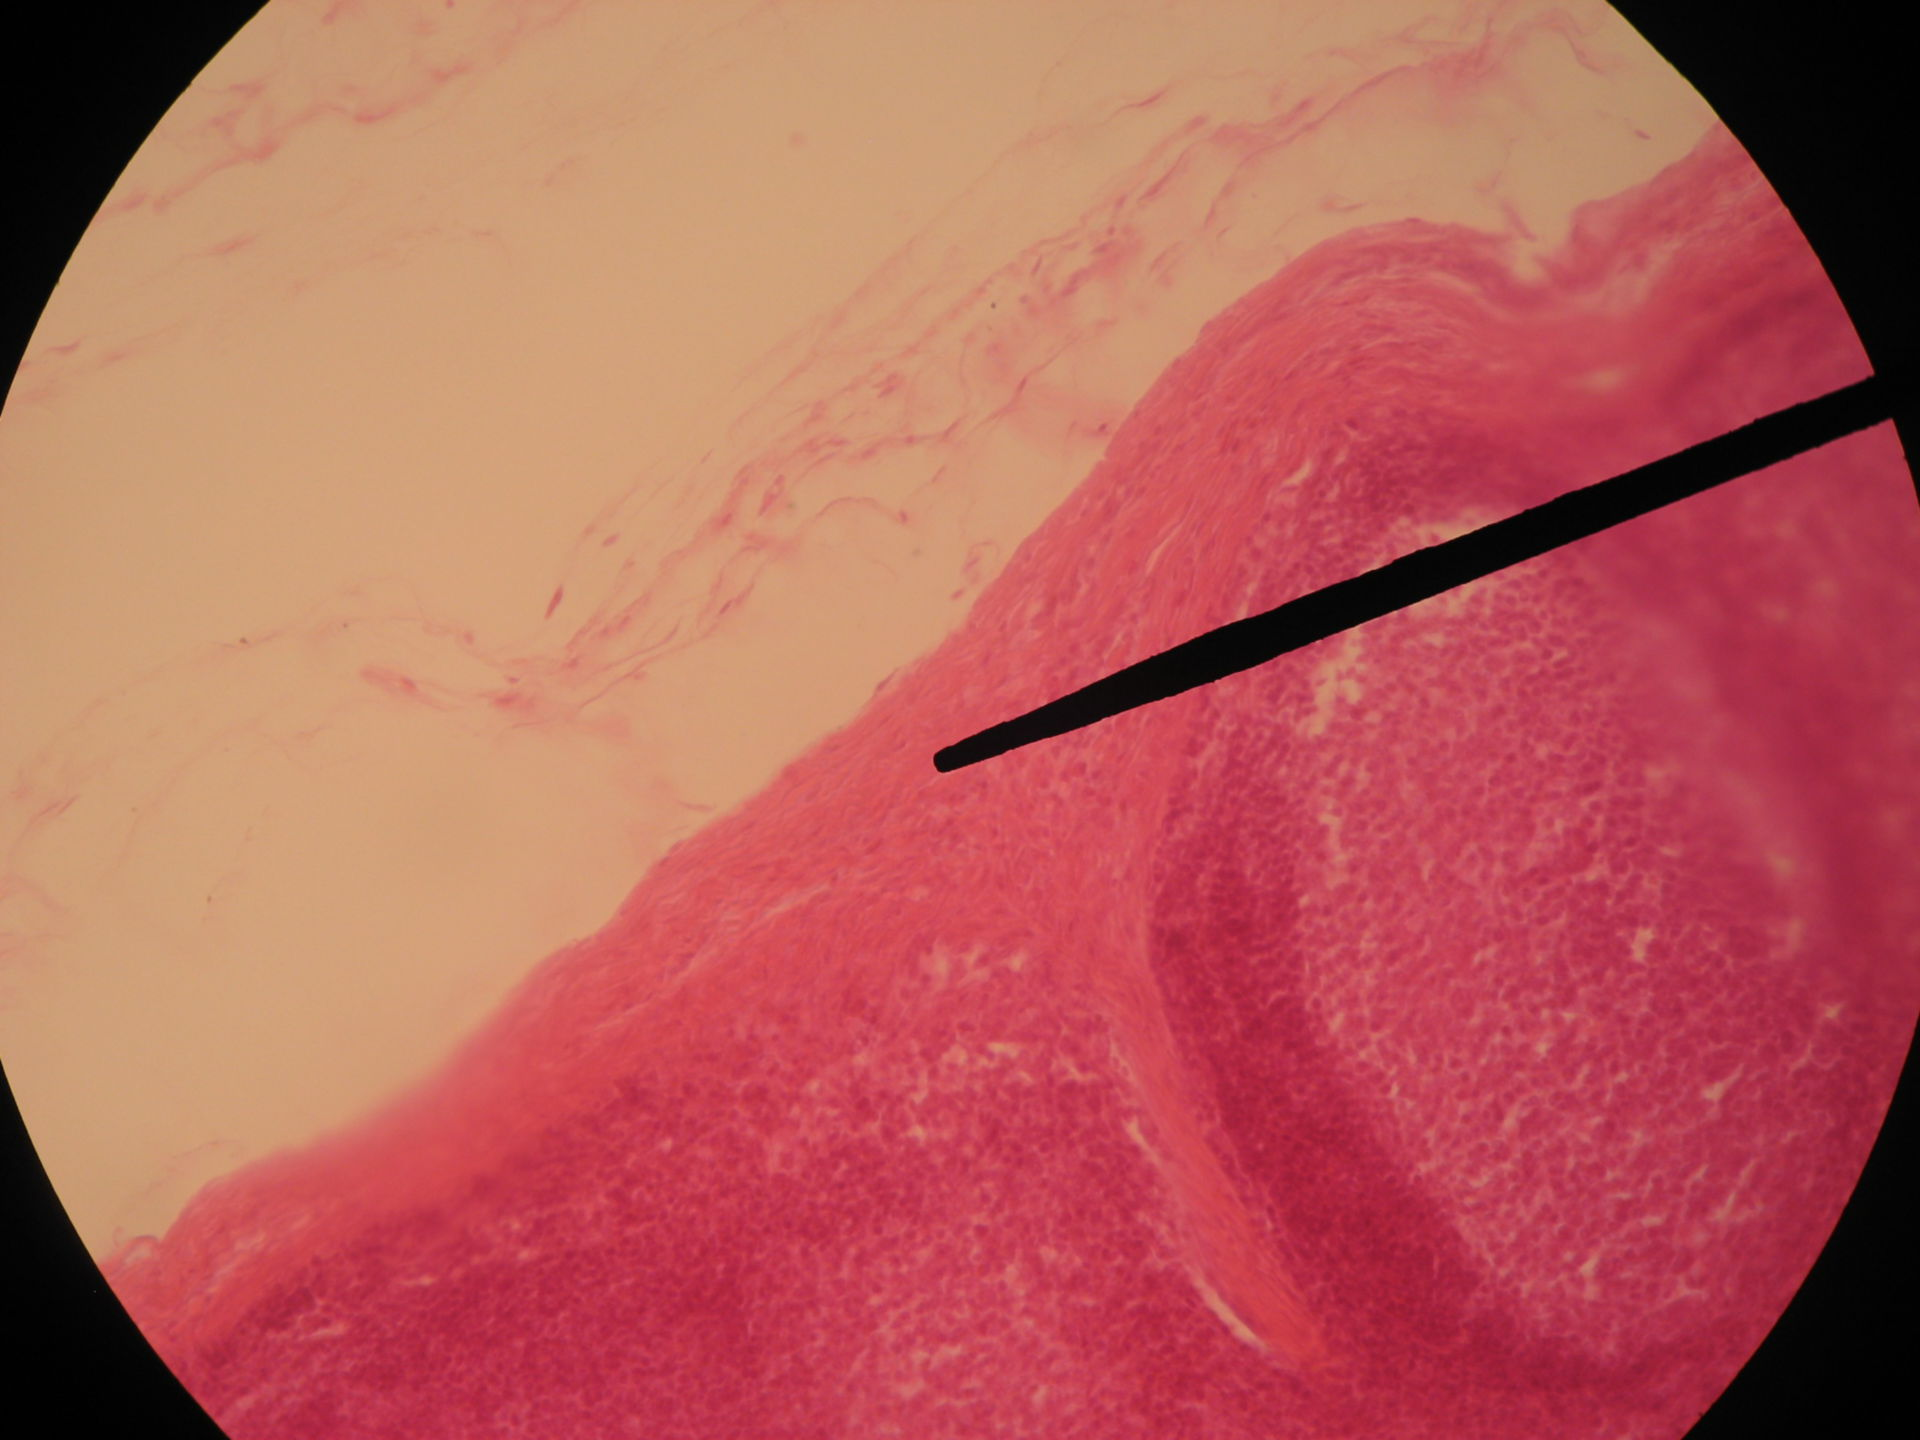 Bovine Lymph Node (2)- Connective Tissue Capsula with Trabeculae